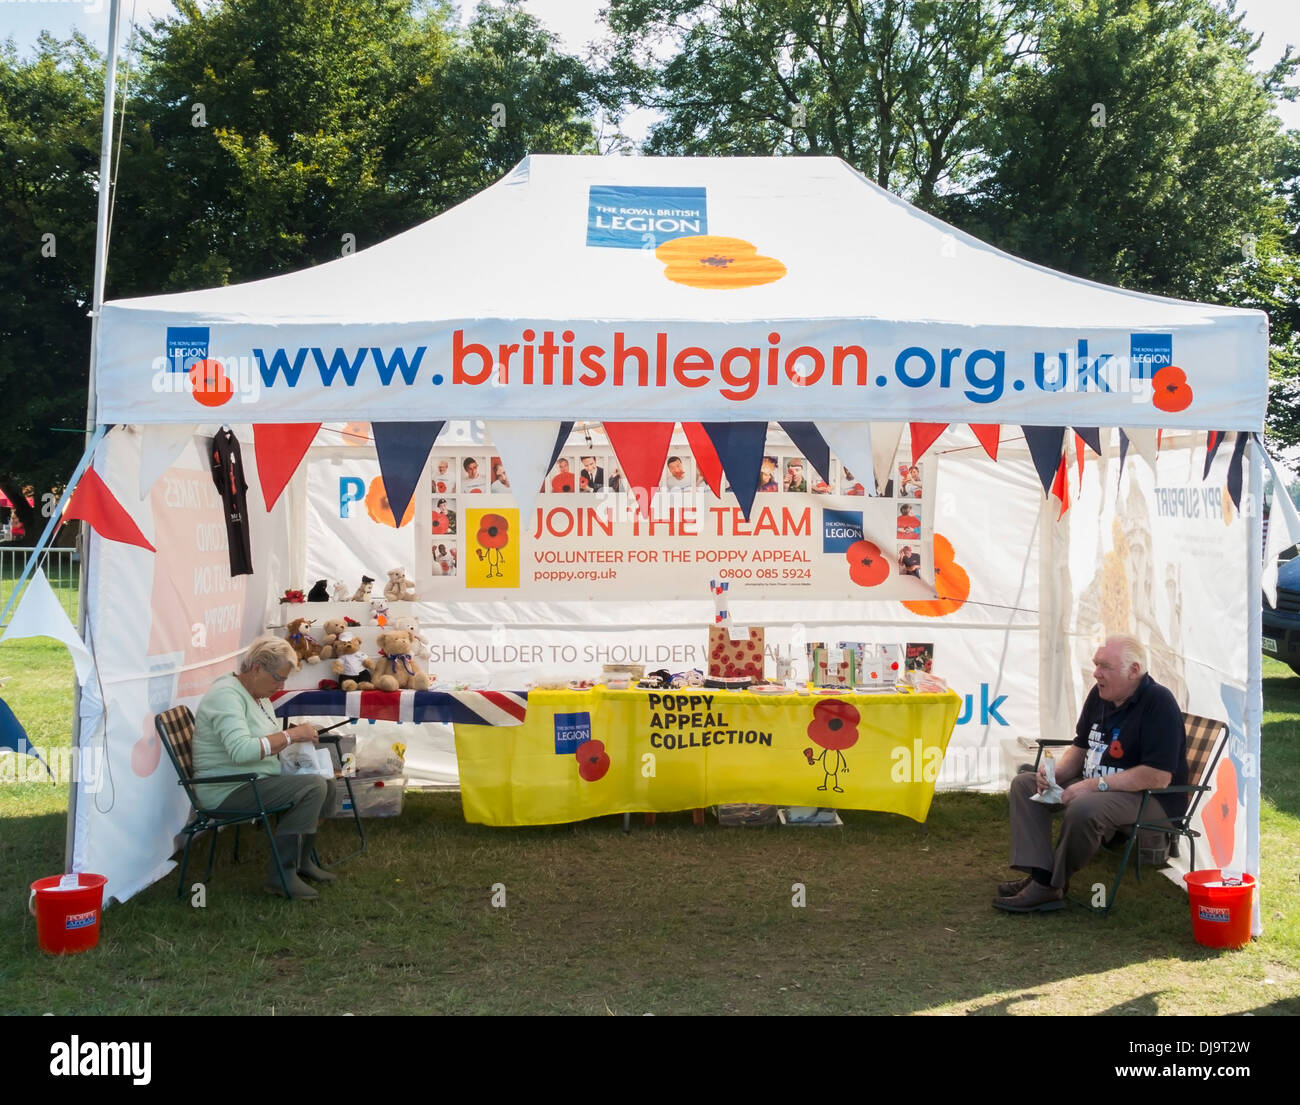 British Legion Collection Tent - Stock Image